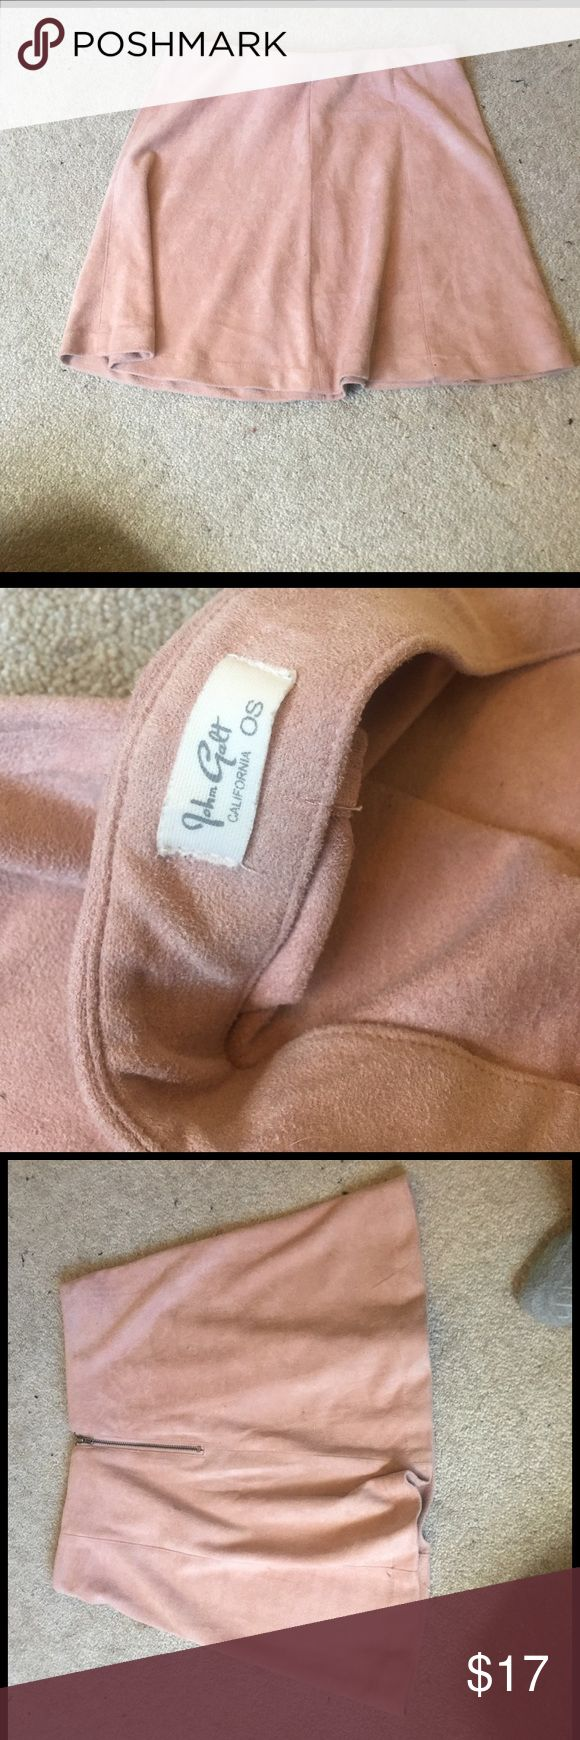 Rare Brandy Melville Suede Pink Skater Skirt one size like new minus small mark on back as pictured (will come off in wash) Brandy Melville Skirts Circle & Skater